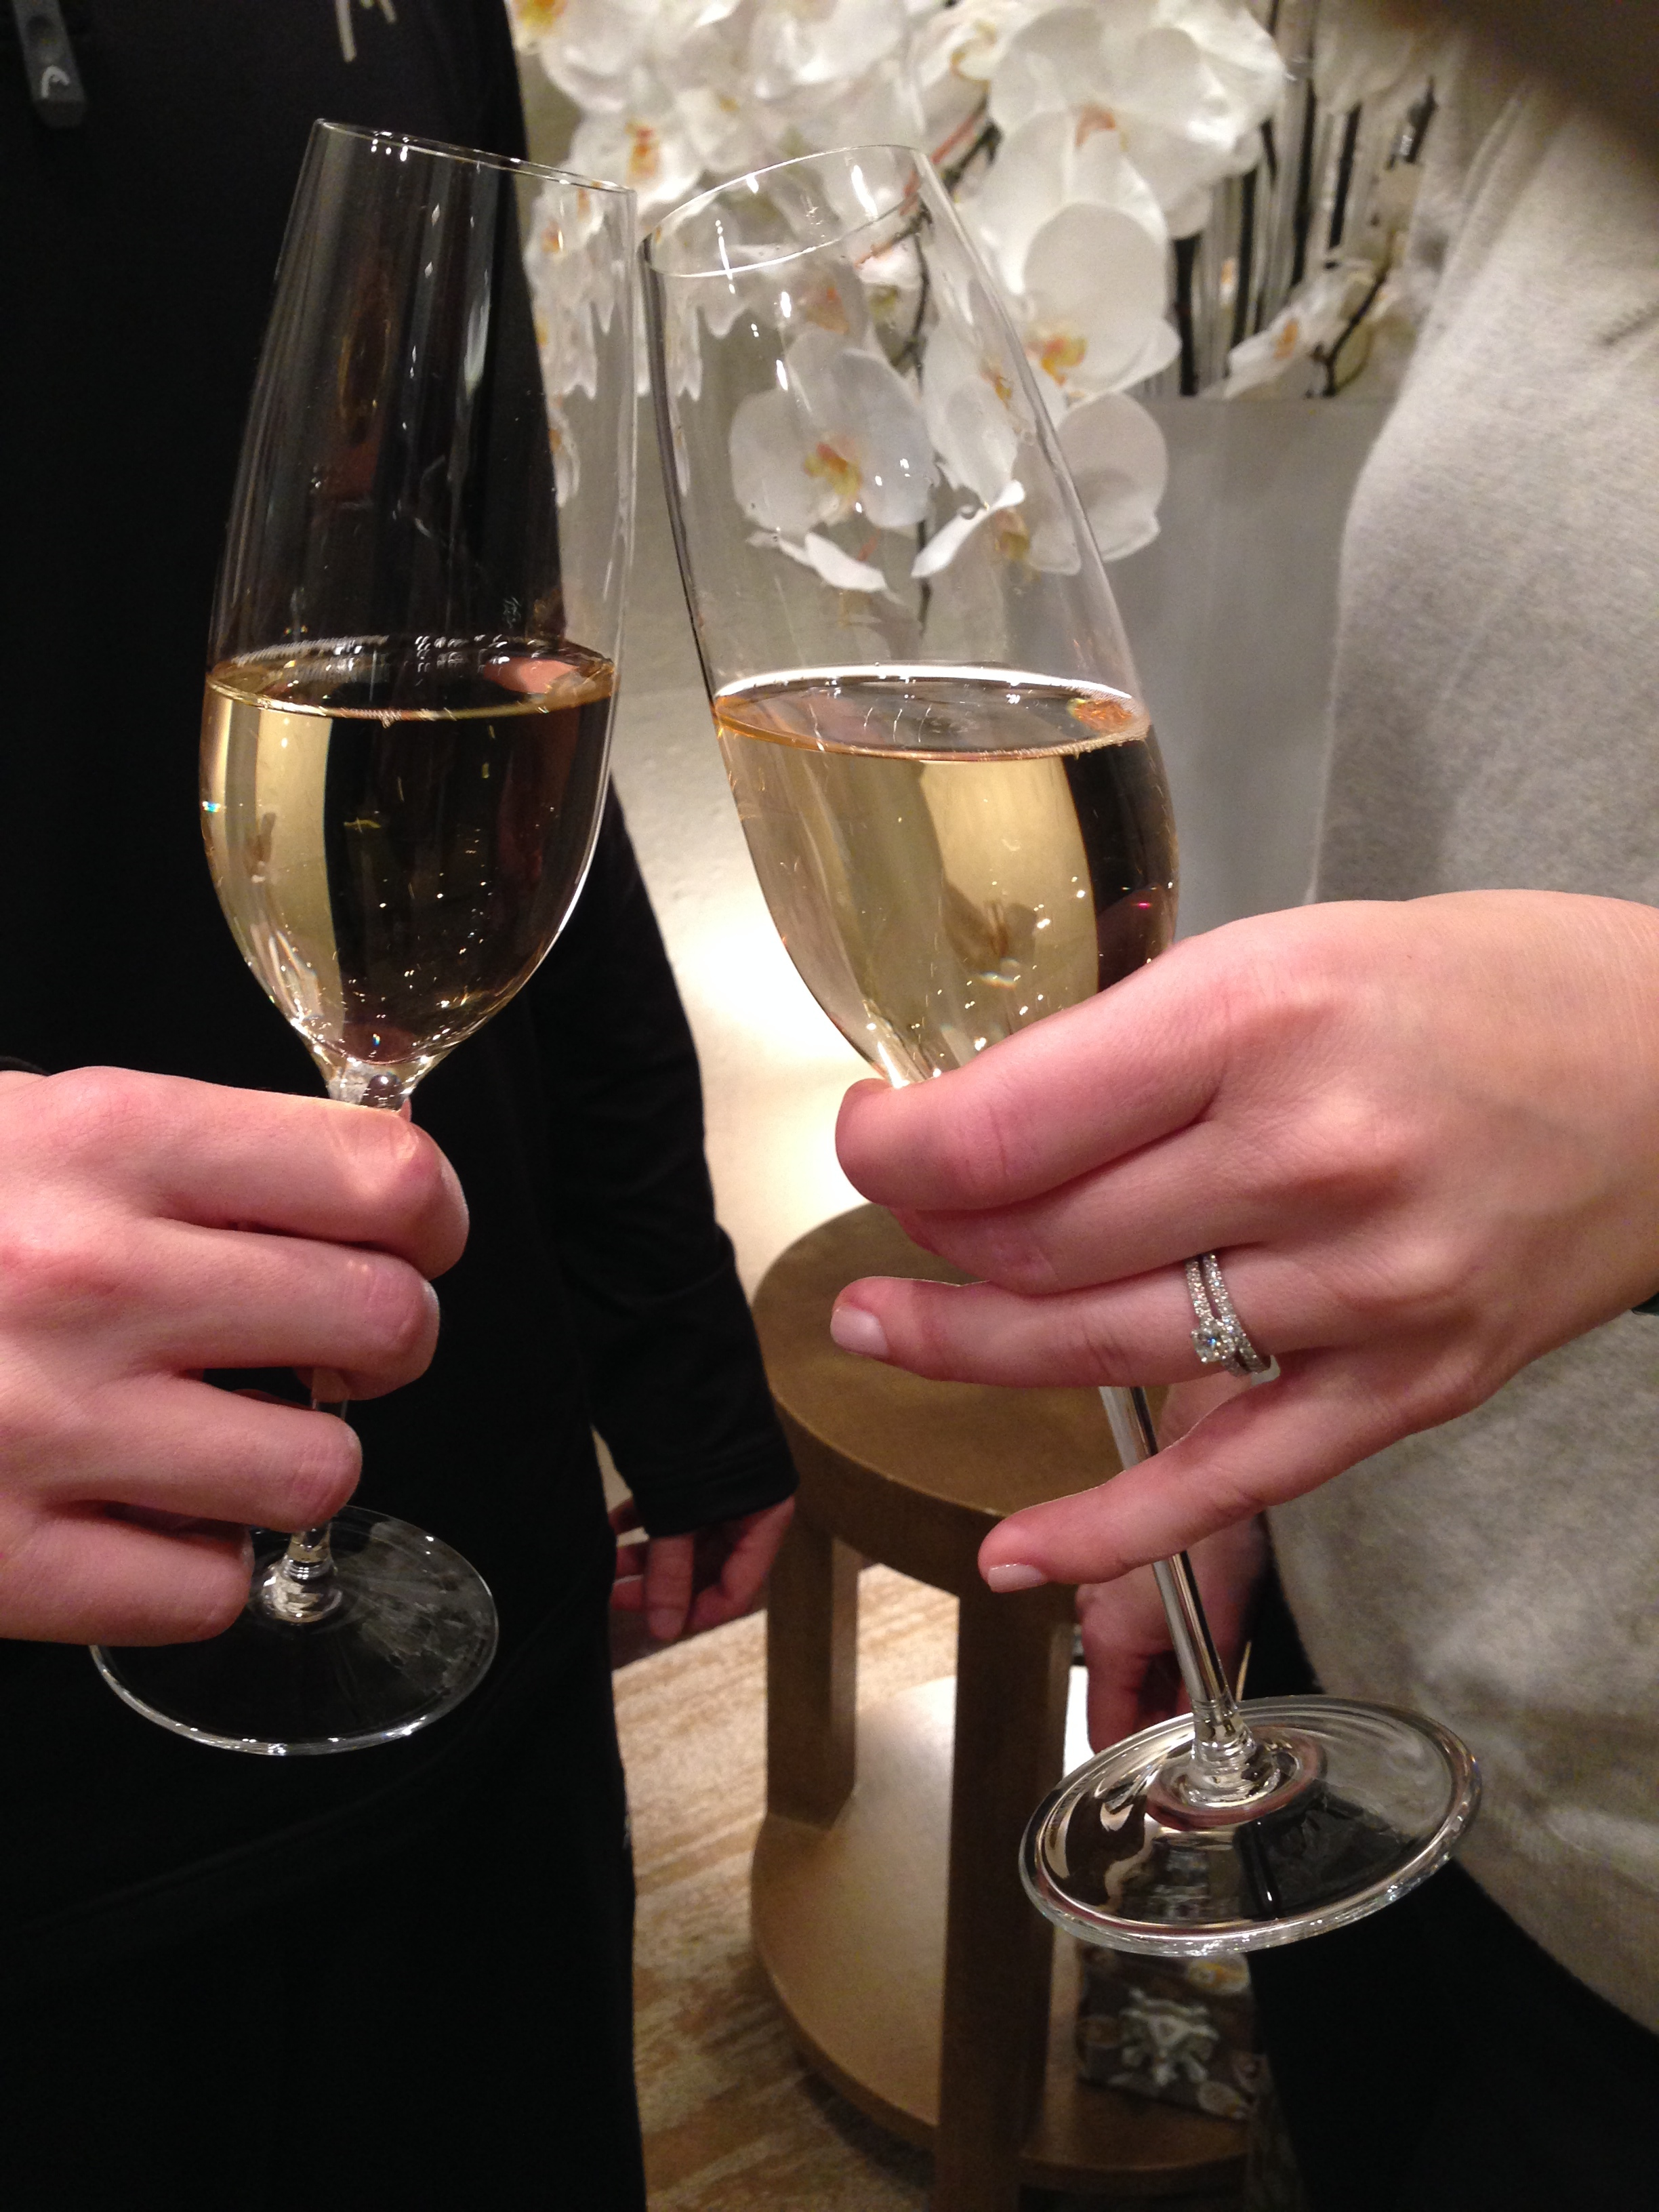 Toasting the first wearing of our rings